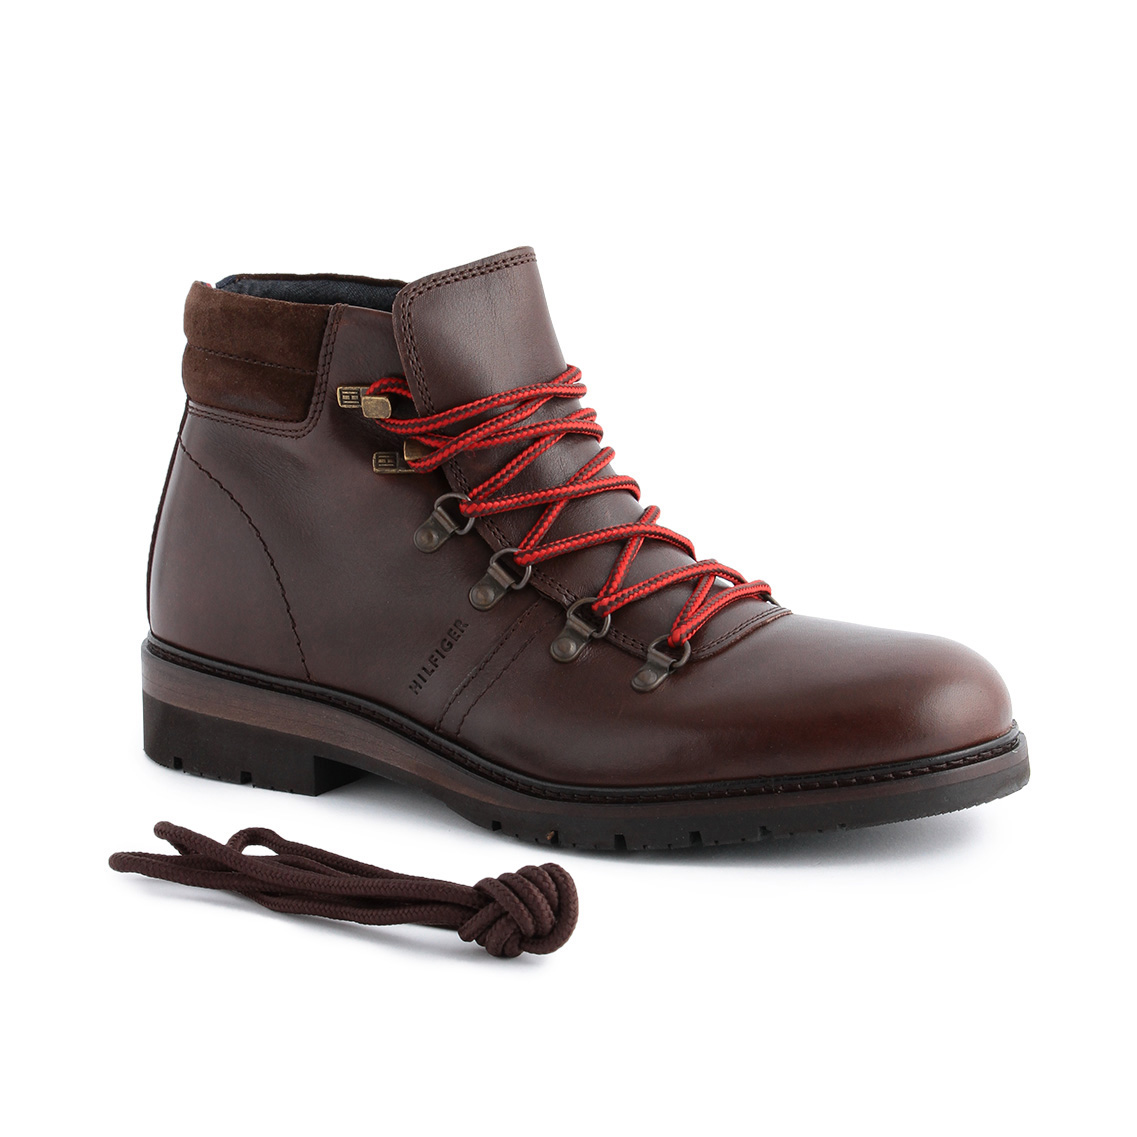 LEATHER TREKKING BOOTS